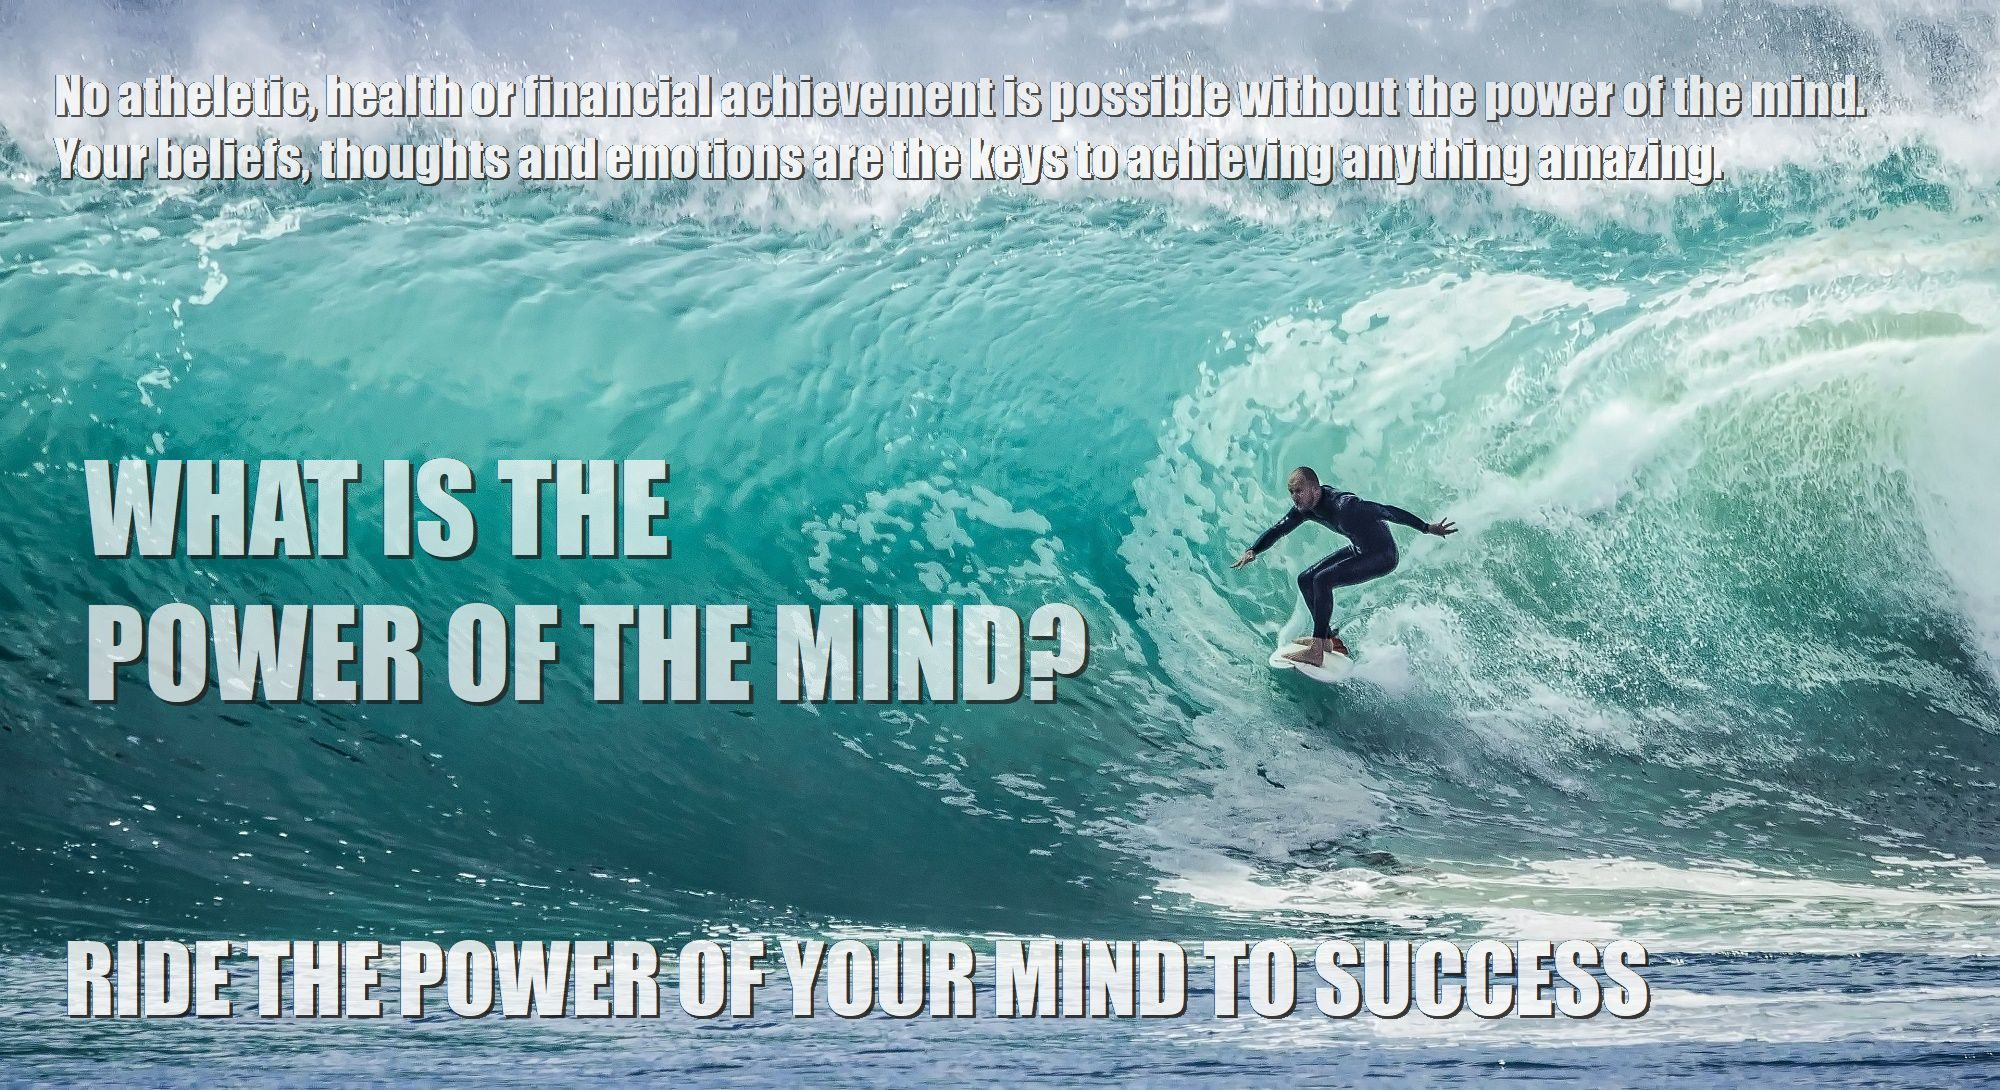 What-is-the-power-of-the-your-my-mind-to-create-health-success-c1-2000